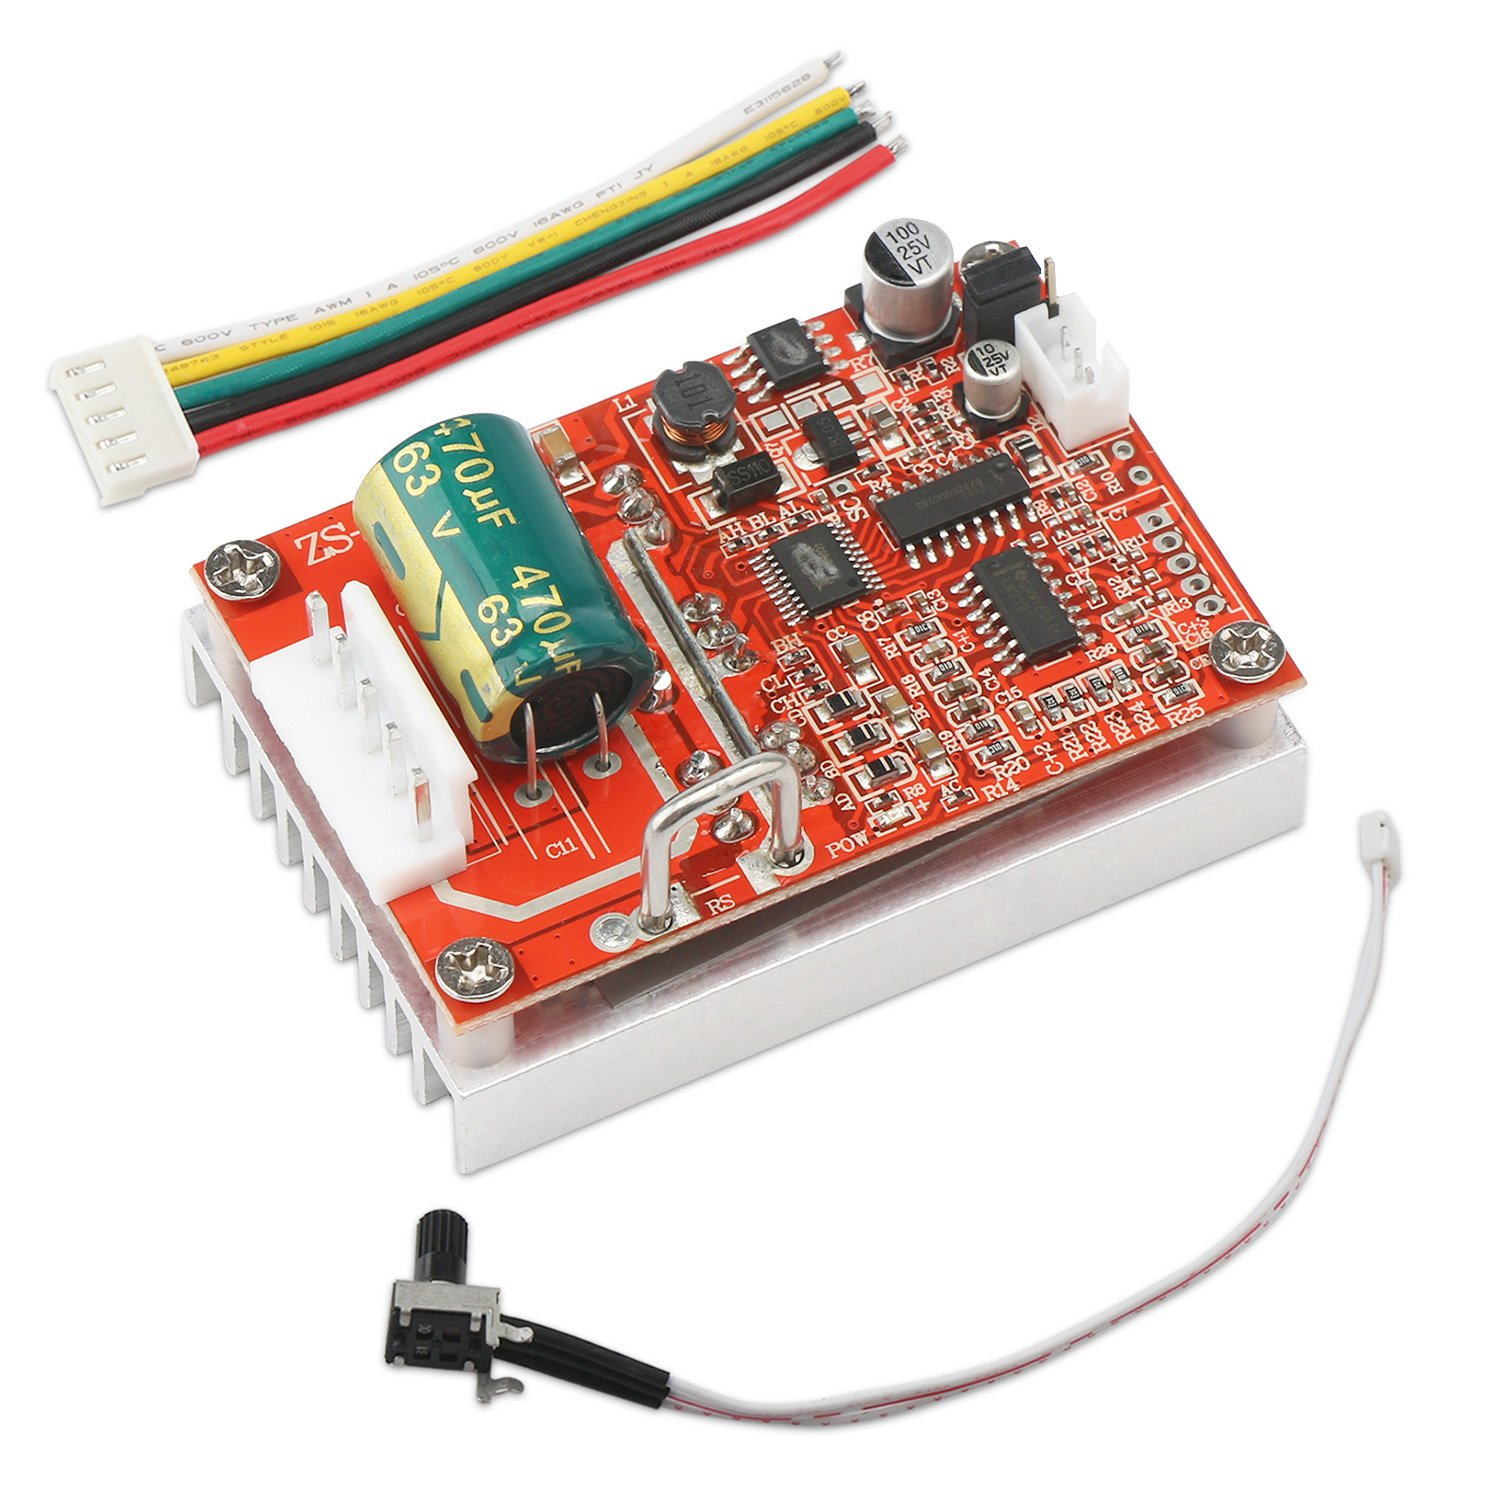 Brushless Dc Motor Speed Controller Drok 6 50v Three Phrase Electric Diagram A Threephase With Sensorless Control Board 12v 24v Bldc Driver Regulator Monitor 380w